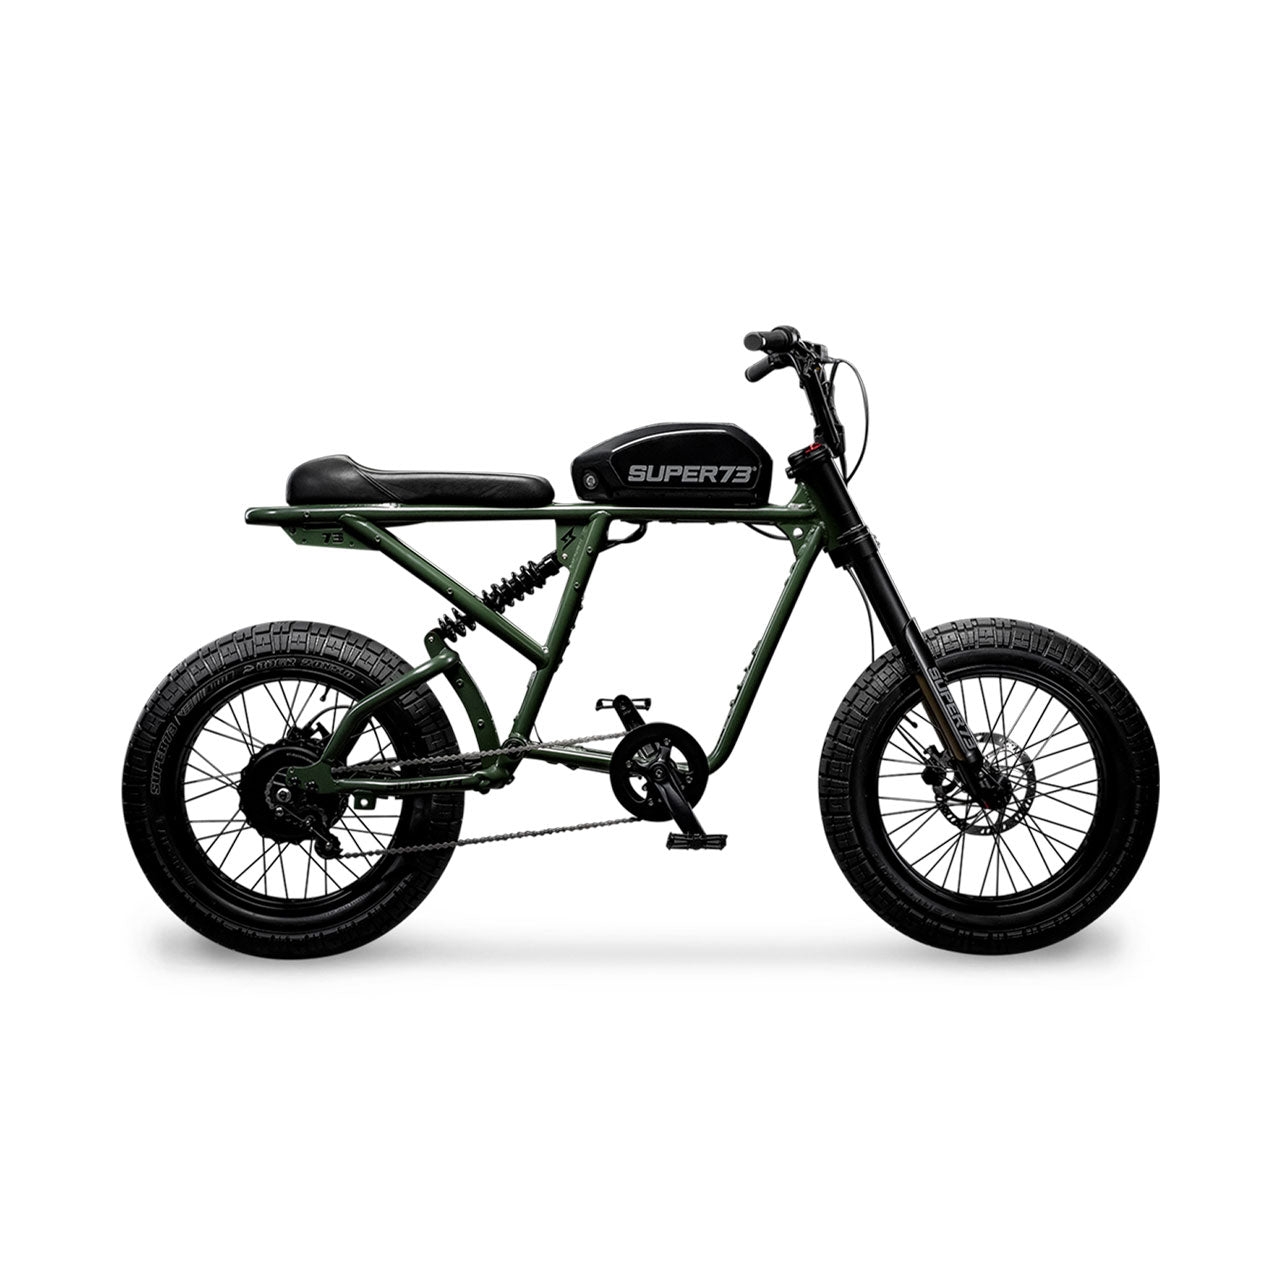 Super73 R Series Electric Bike